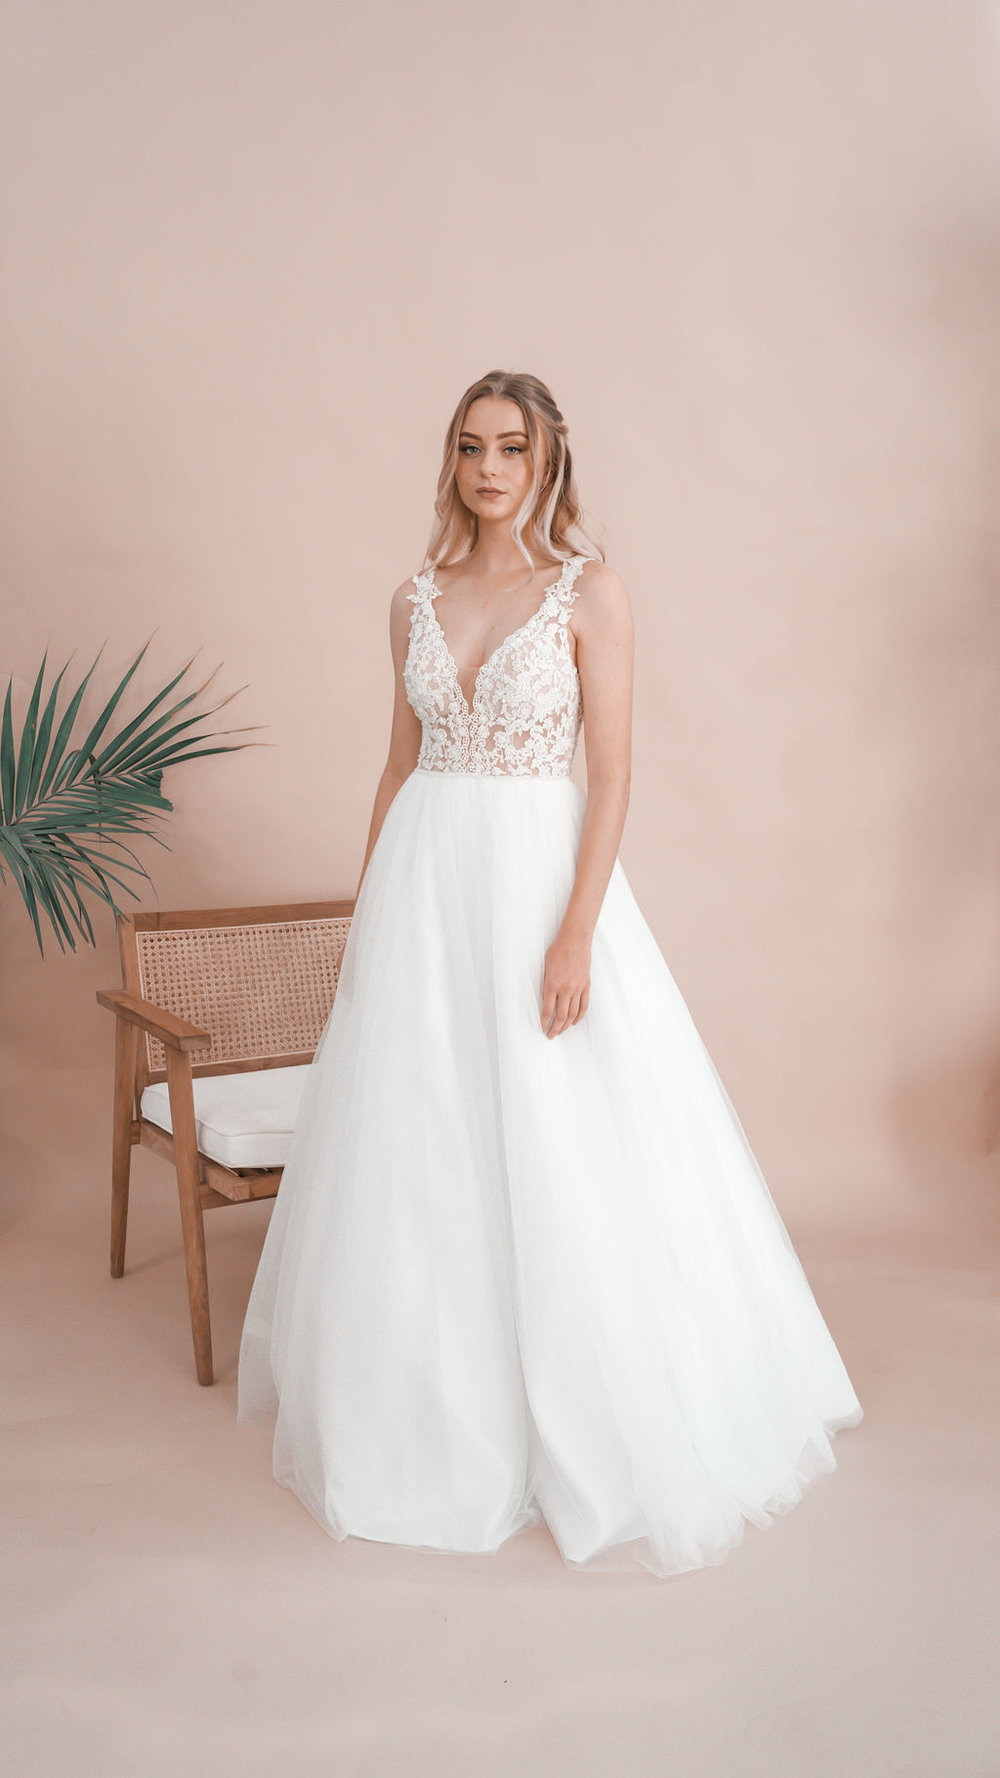 Sophia Debutante Dress